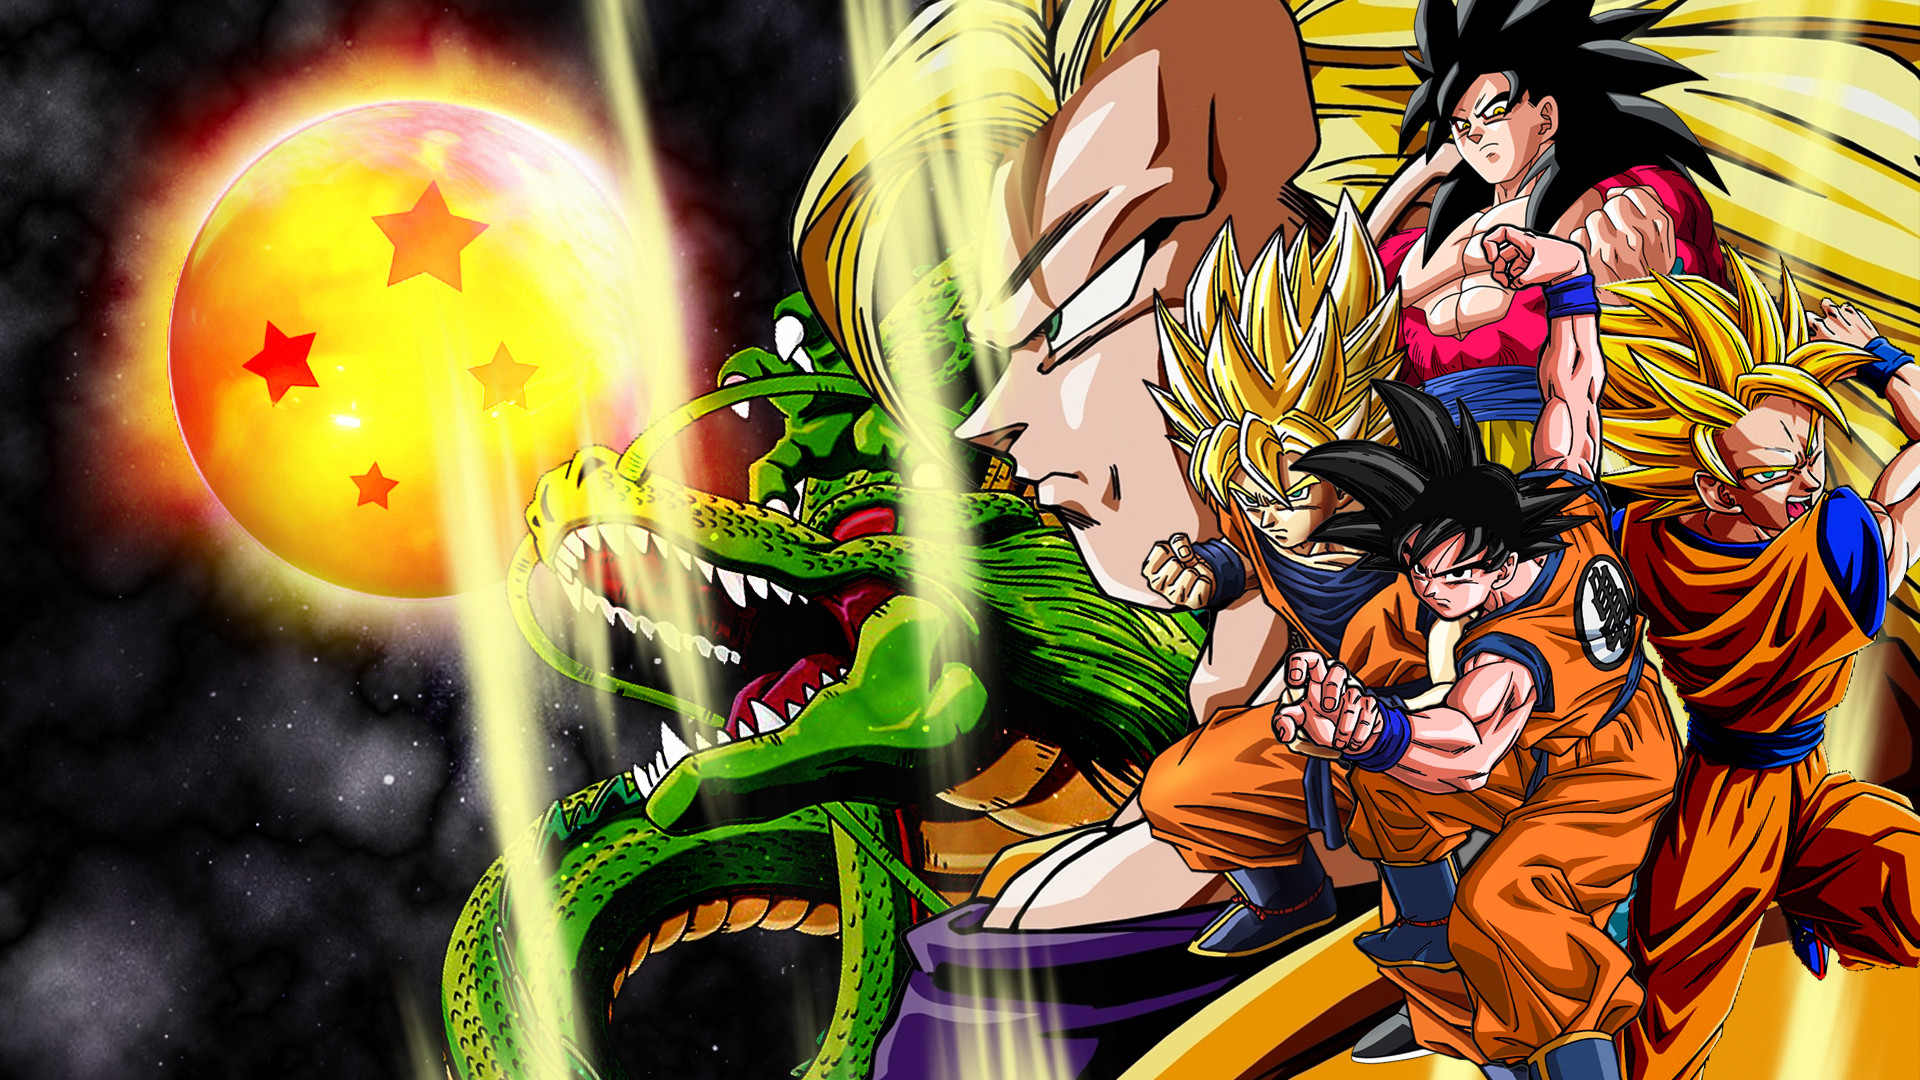 1920x1080 Dragon Ball Z Wallpaper 34084